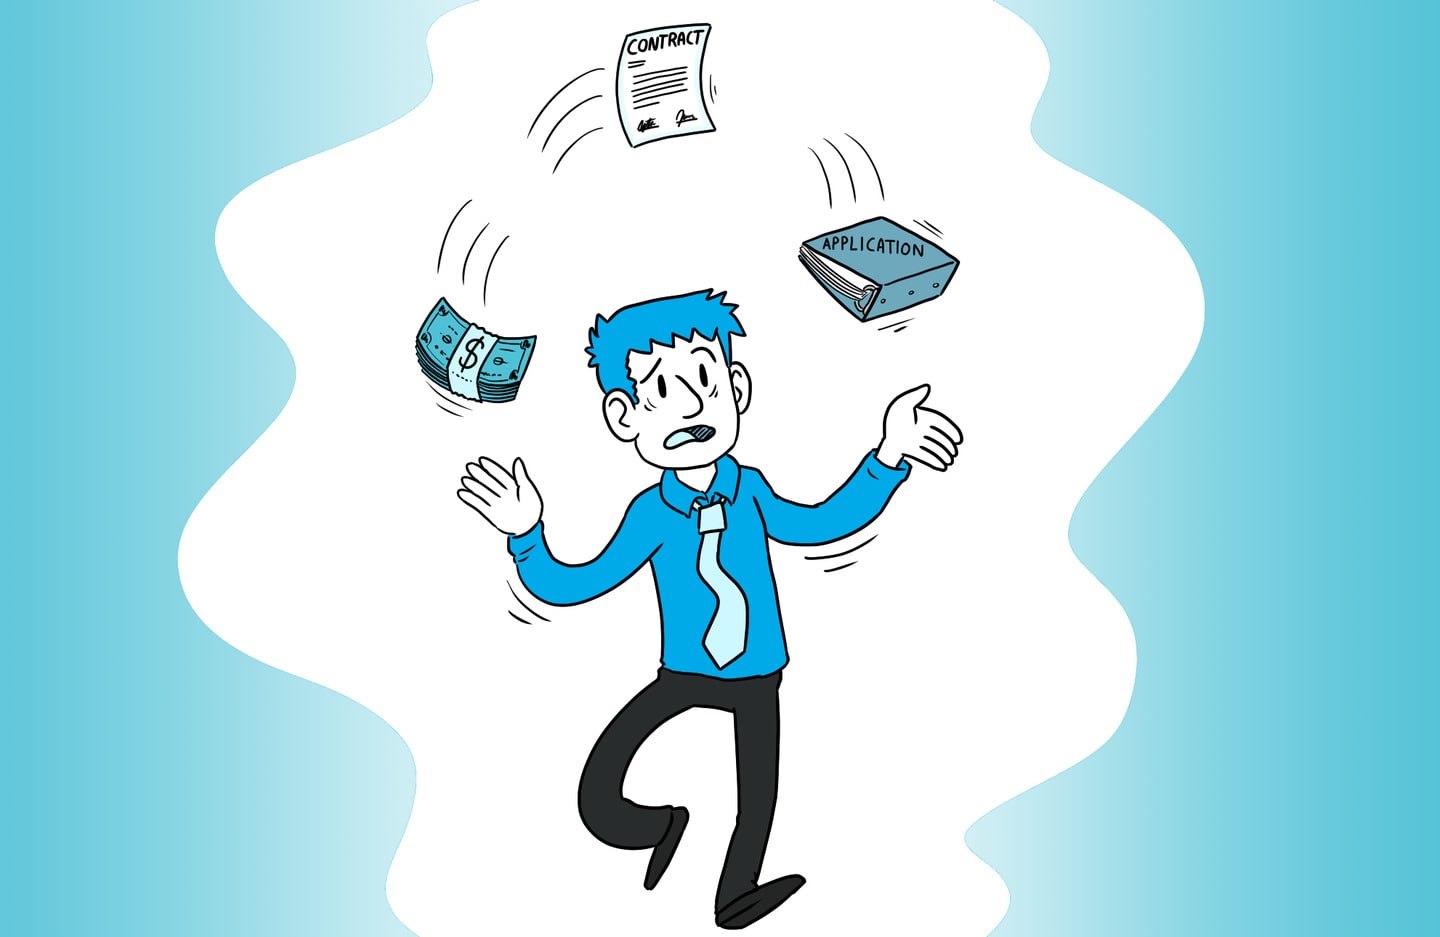 Buyer juggling the loan application, building application and contract after reaching an accepted offer